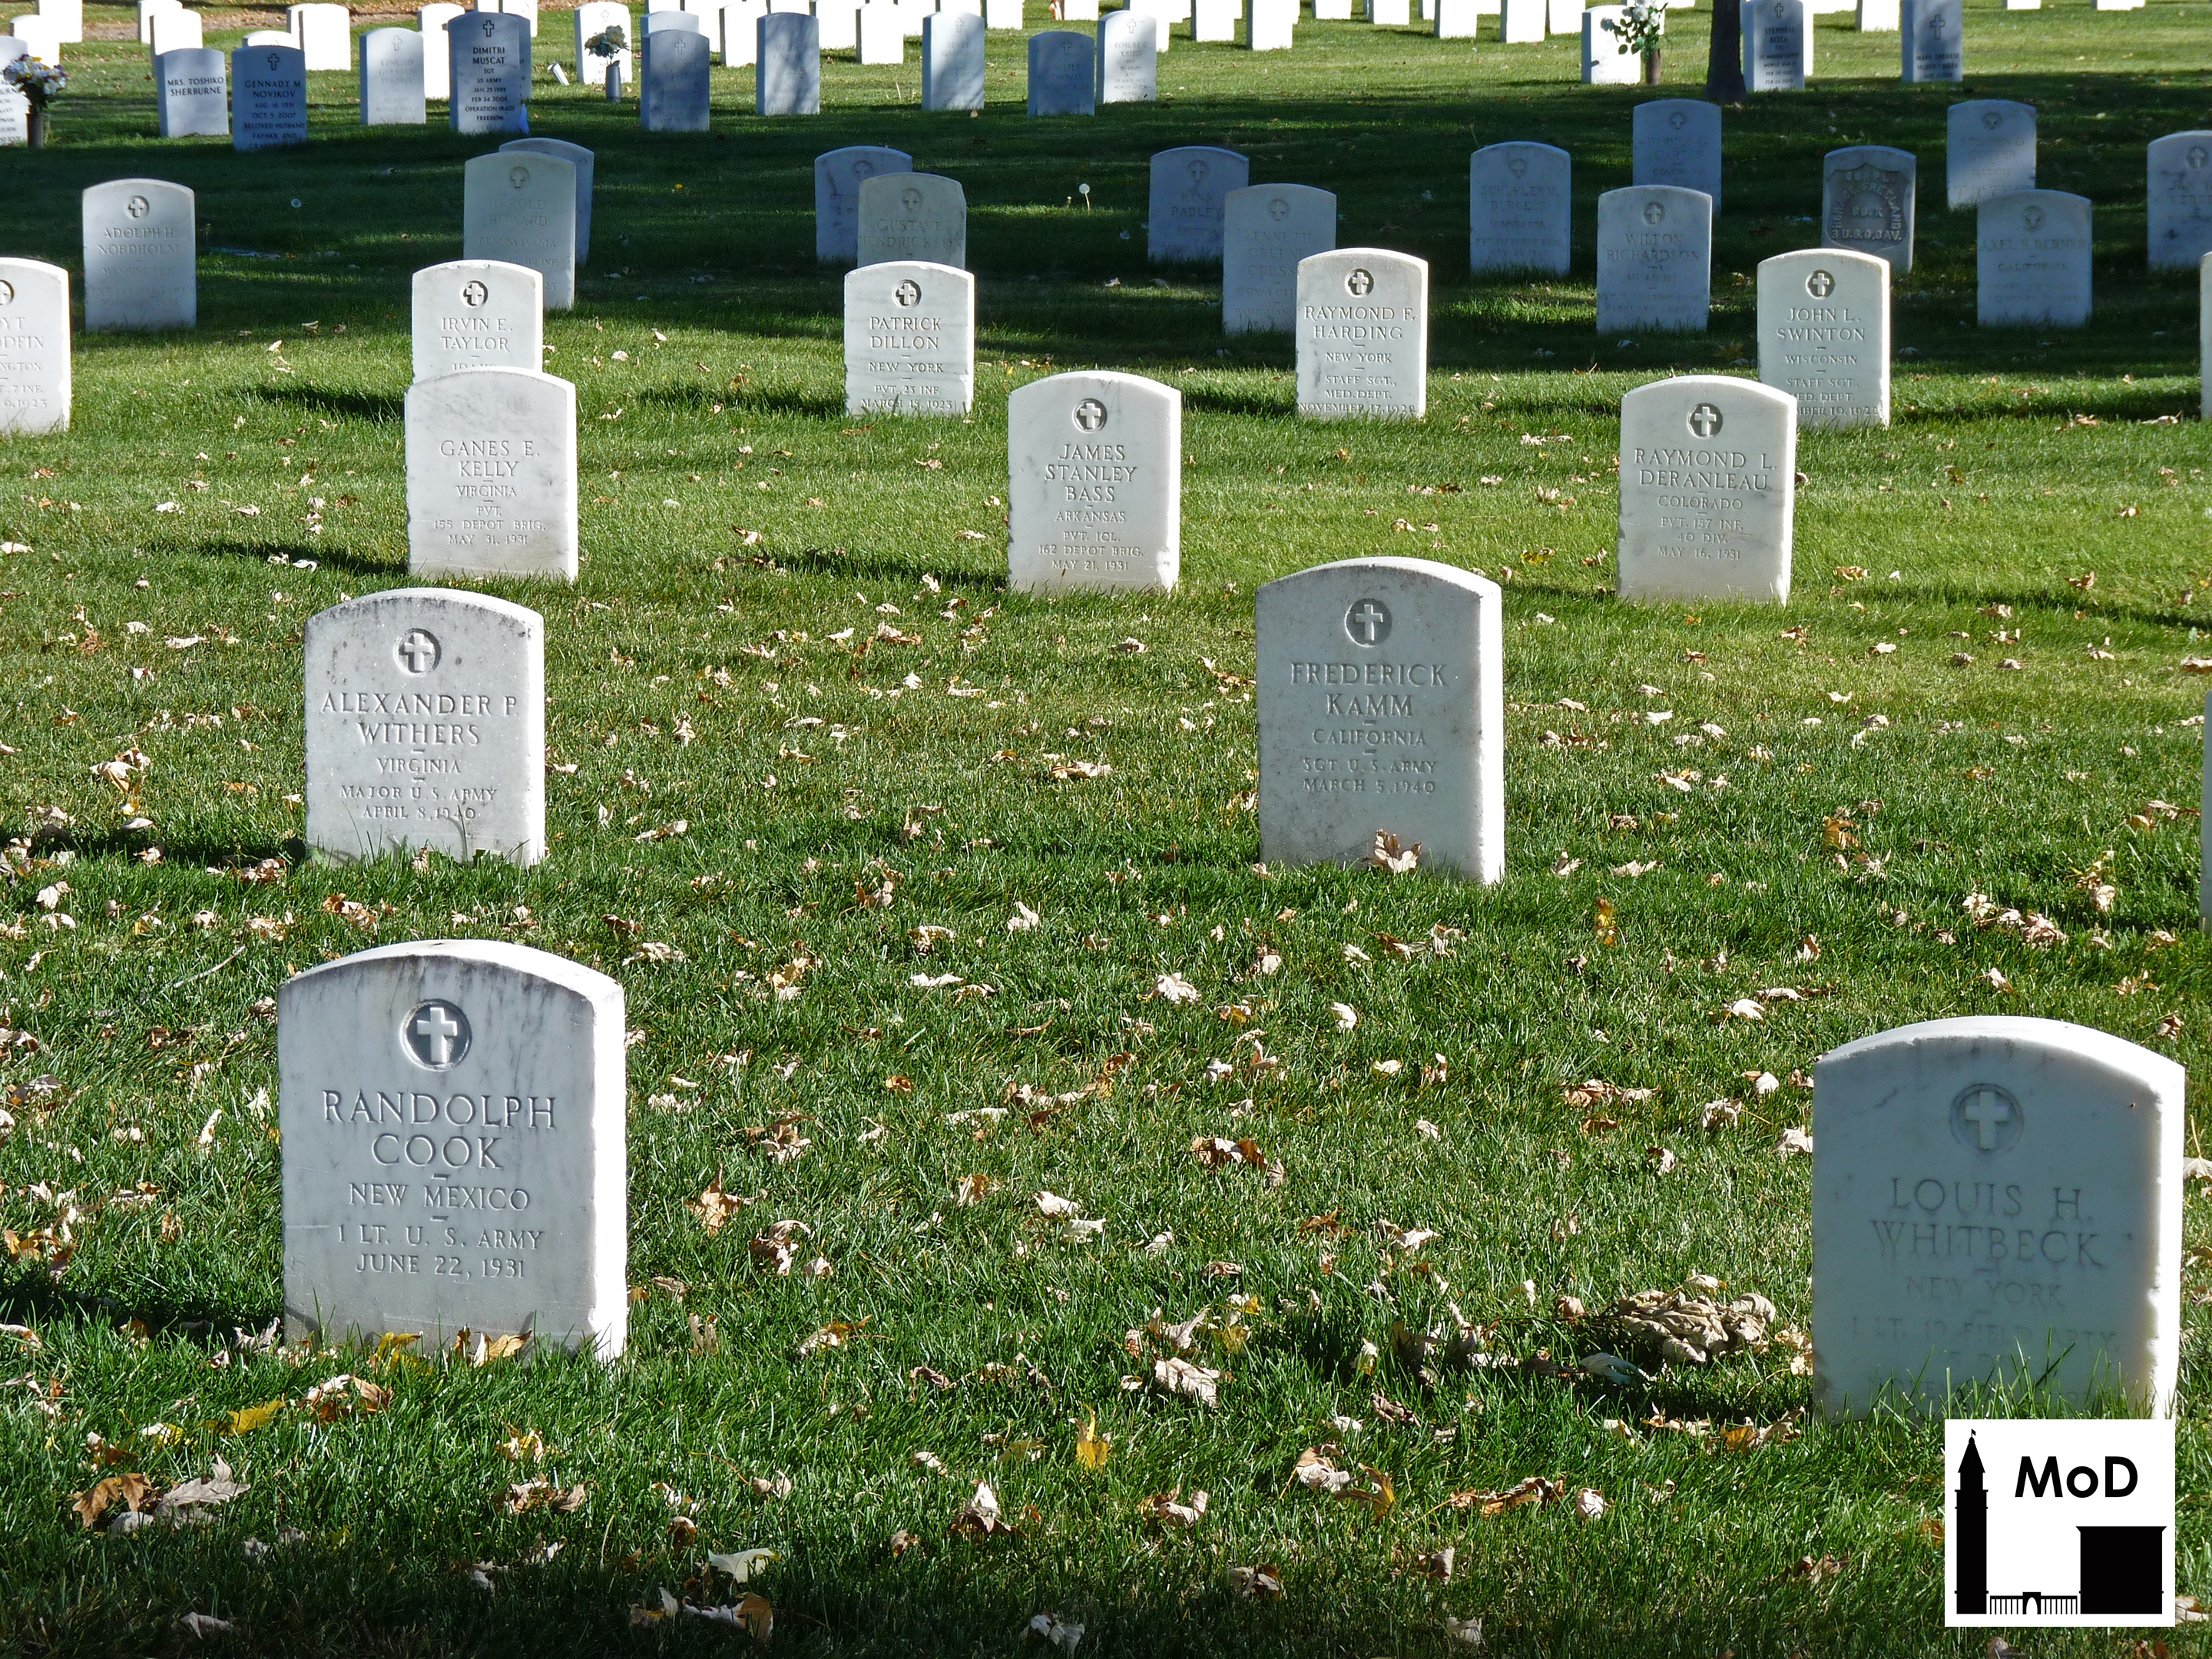 The masonry of veterans day the masonry of denver va issued upright grave markers are 42 inches long 13 inches wide and 4 inches deep though the depth of their installation varies buycottarizona